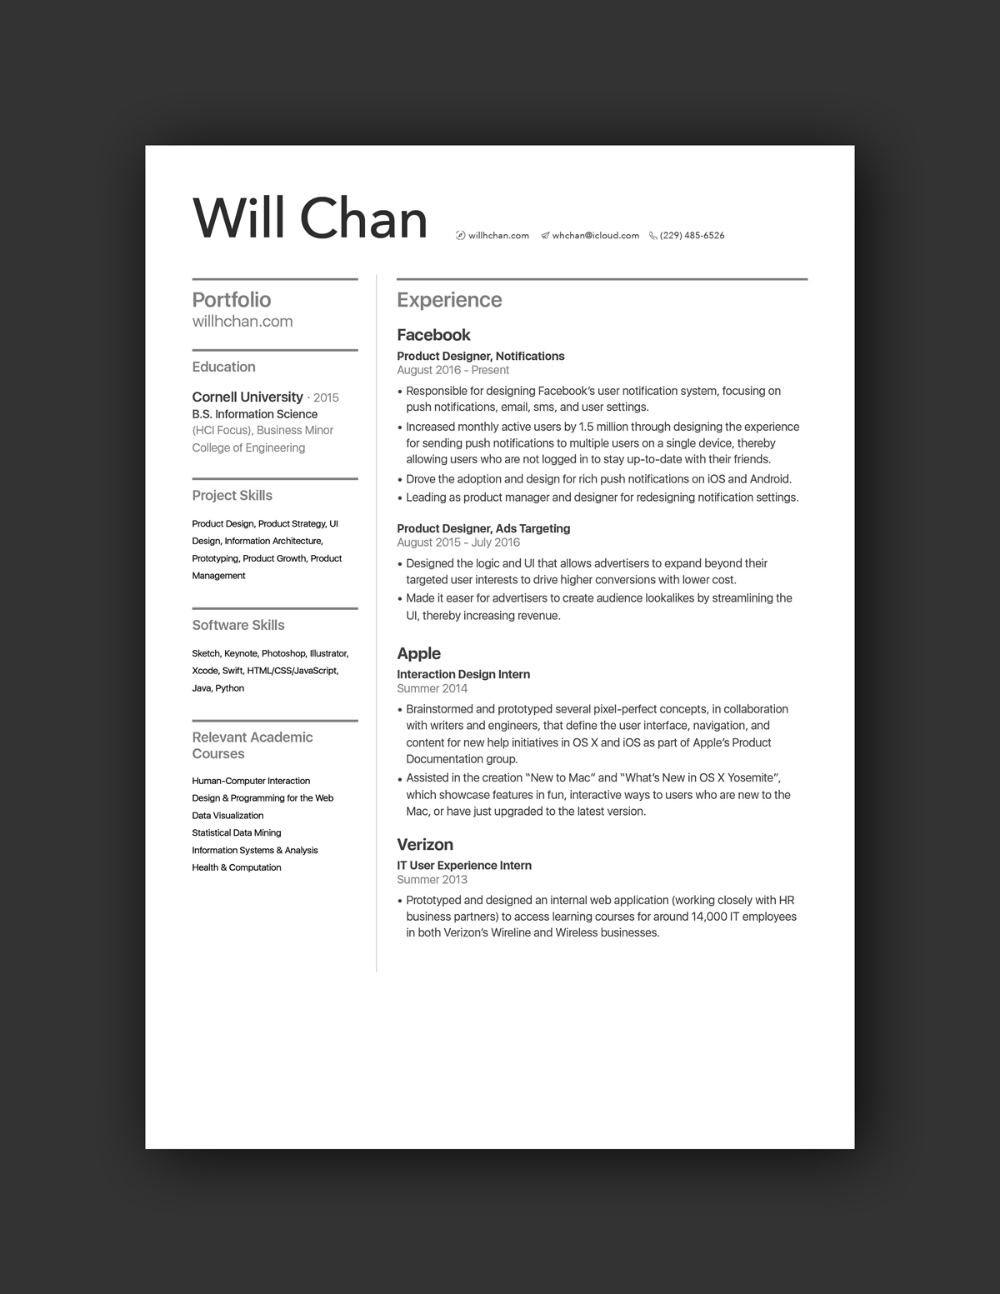 21 Inspiring Ux Designer Resumes And Why They Work Resume Design Resume Examples Resume